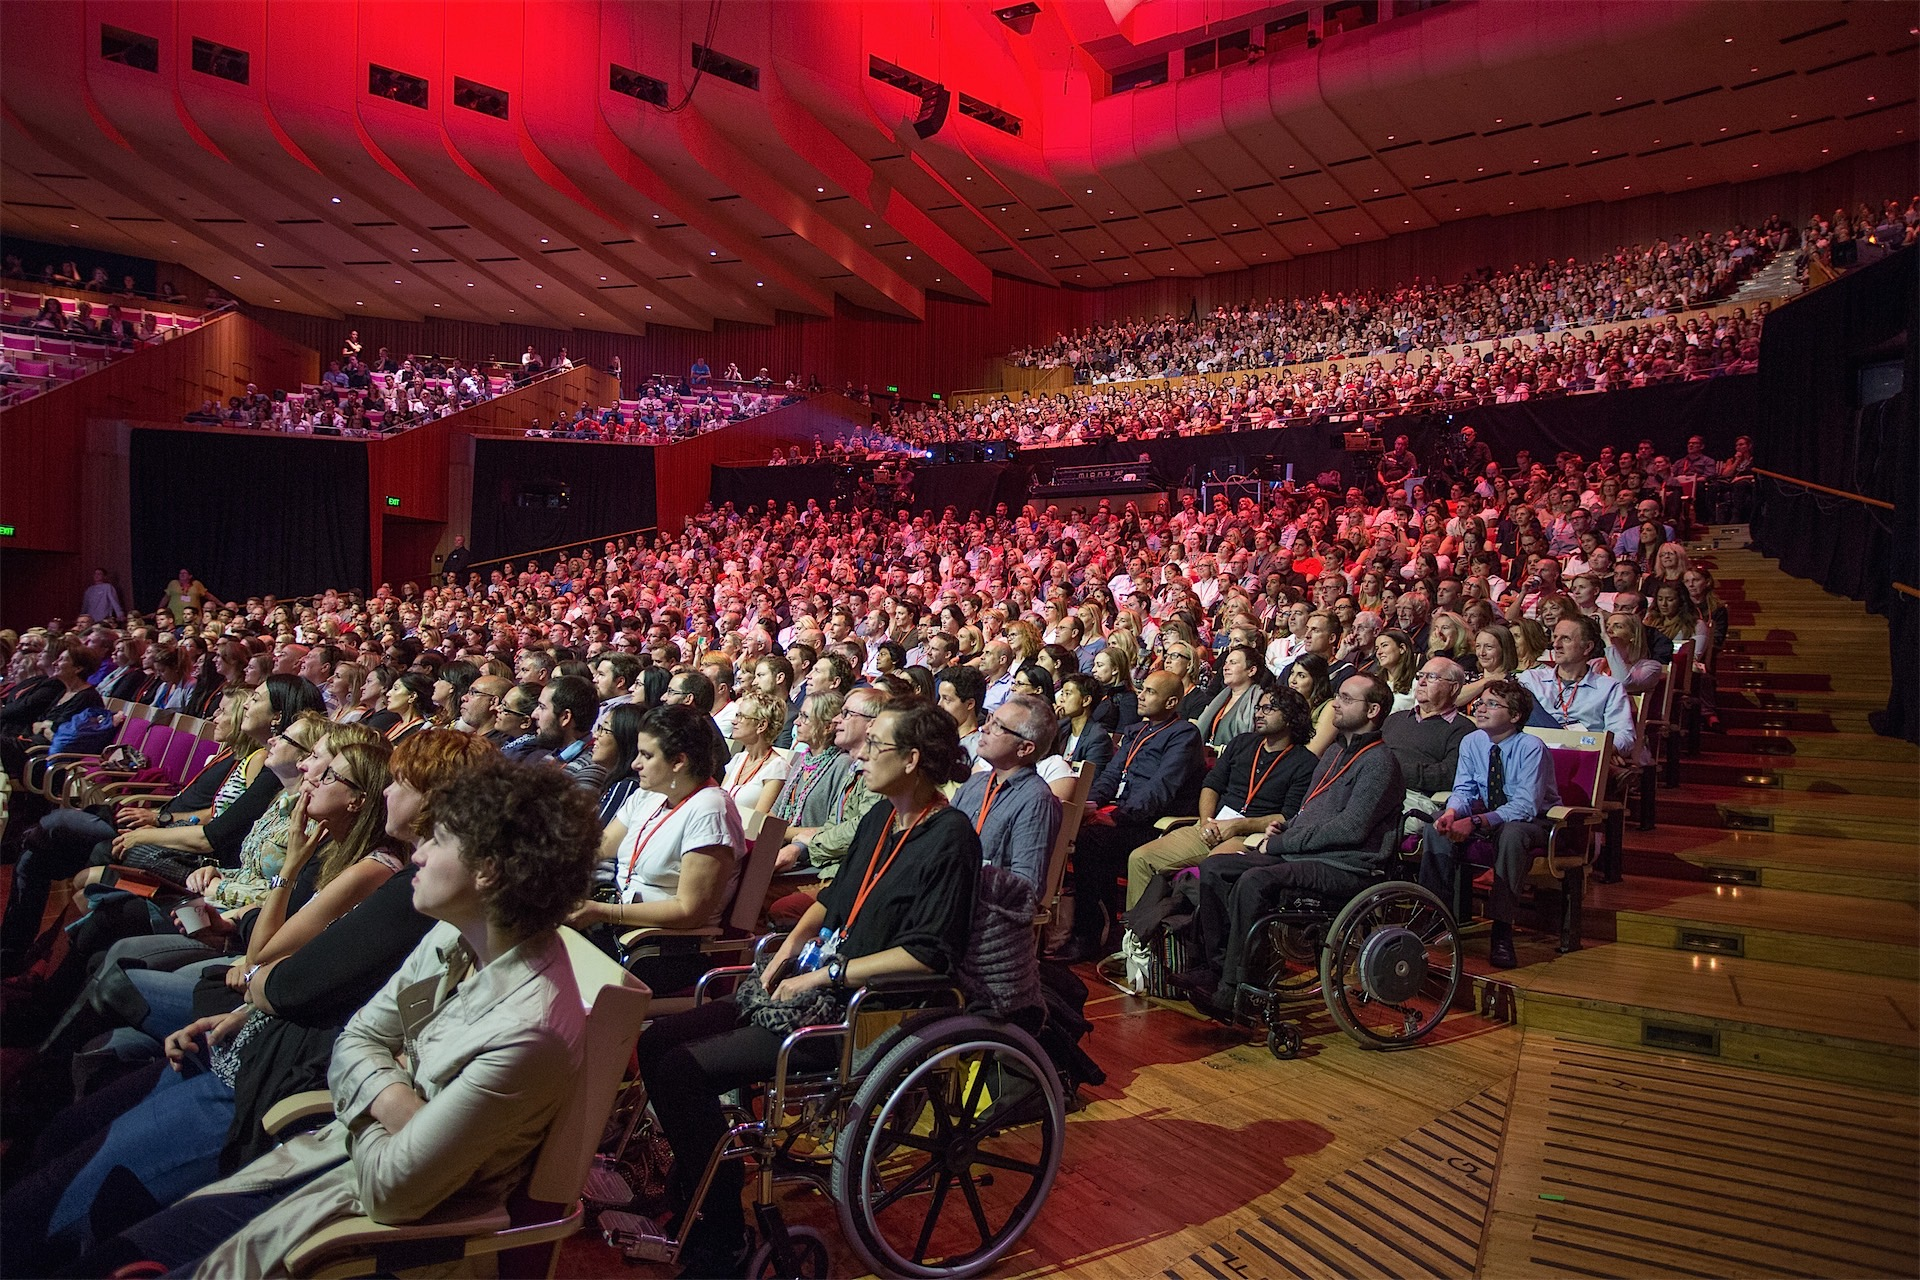 Photo: Richard Walters | TEDxSydney